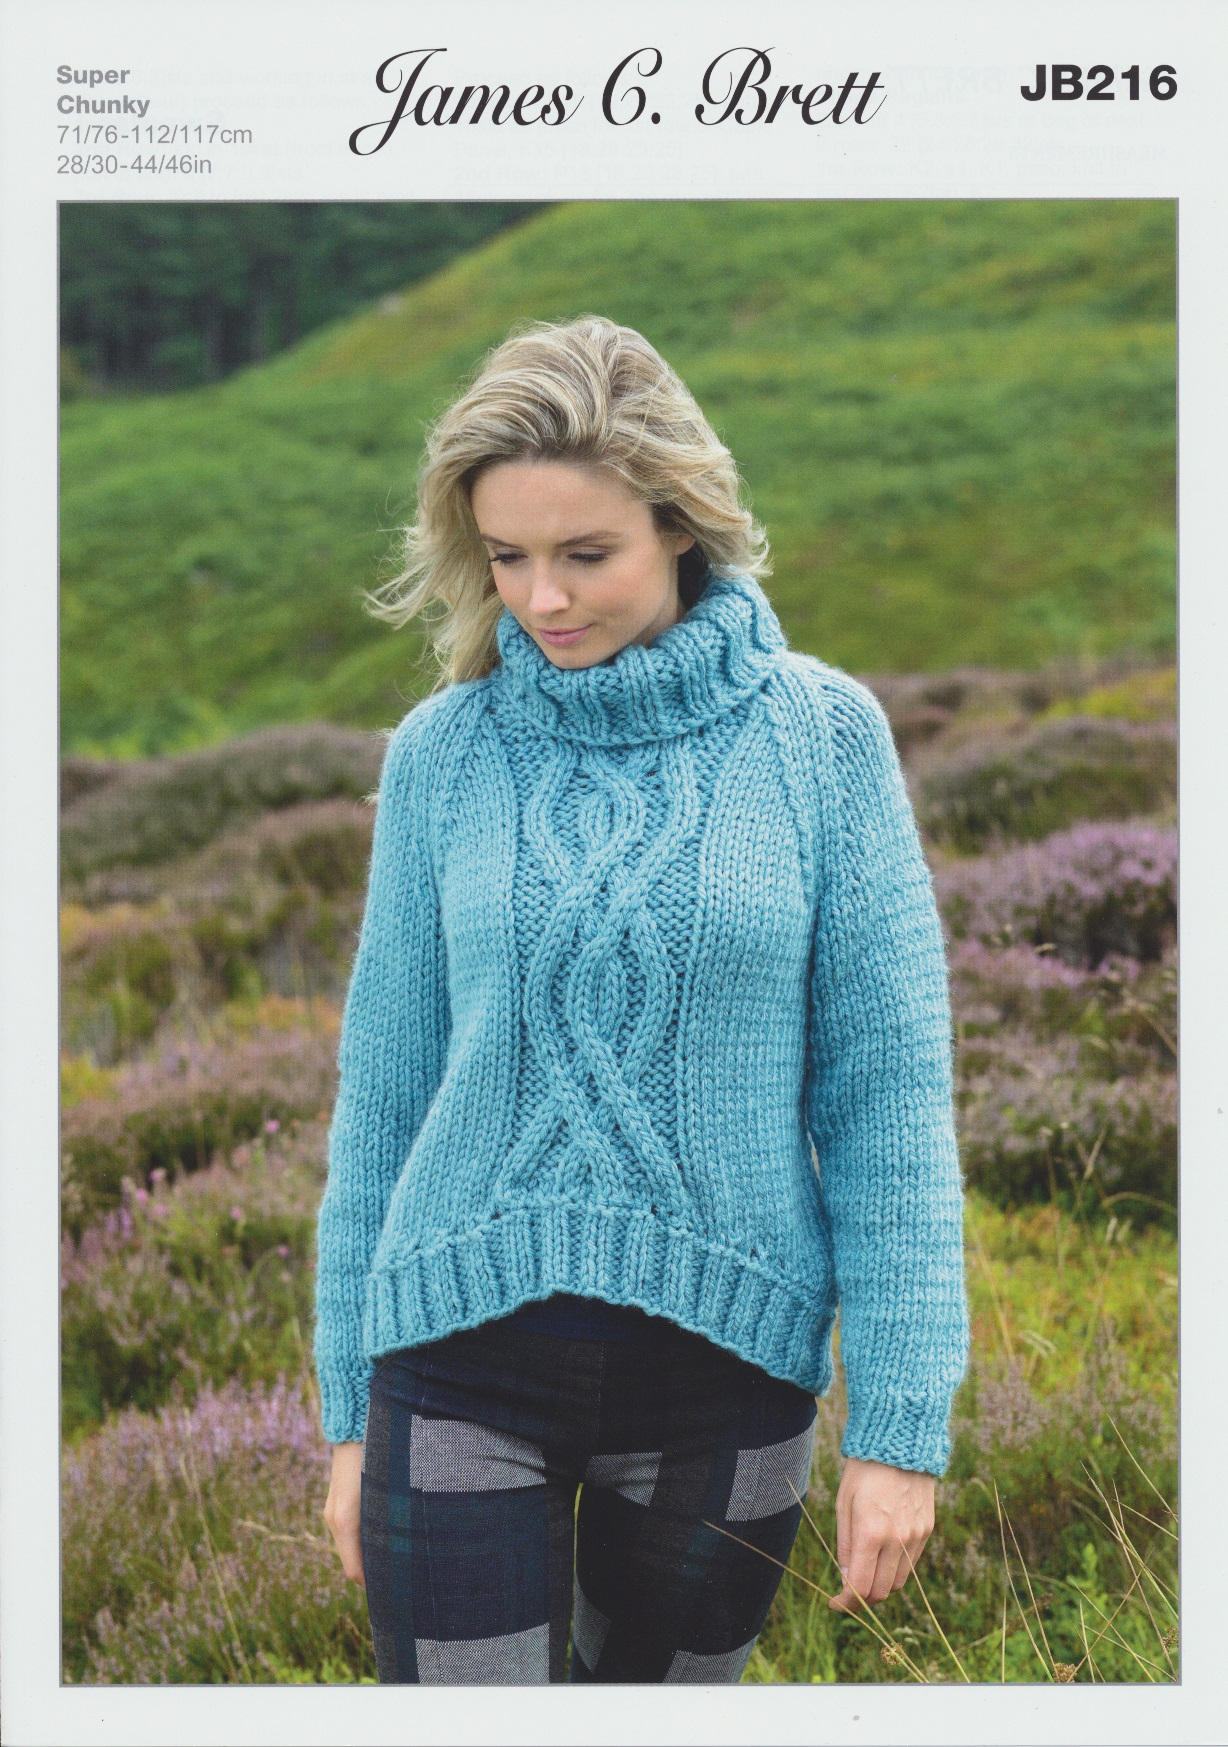 Super Chunky Jumper Knitting Pattern : Ladies Super Chunky Knitting Pattern Roll Neck Sweater James Brett JB216